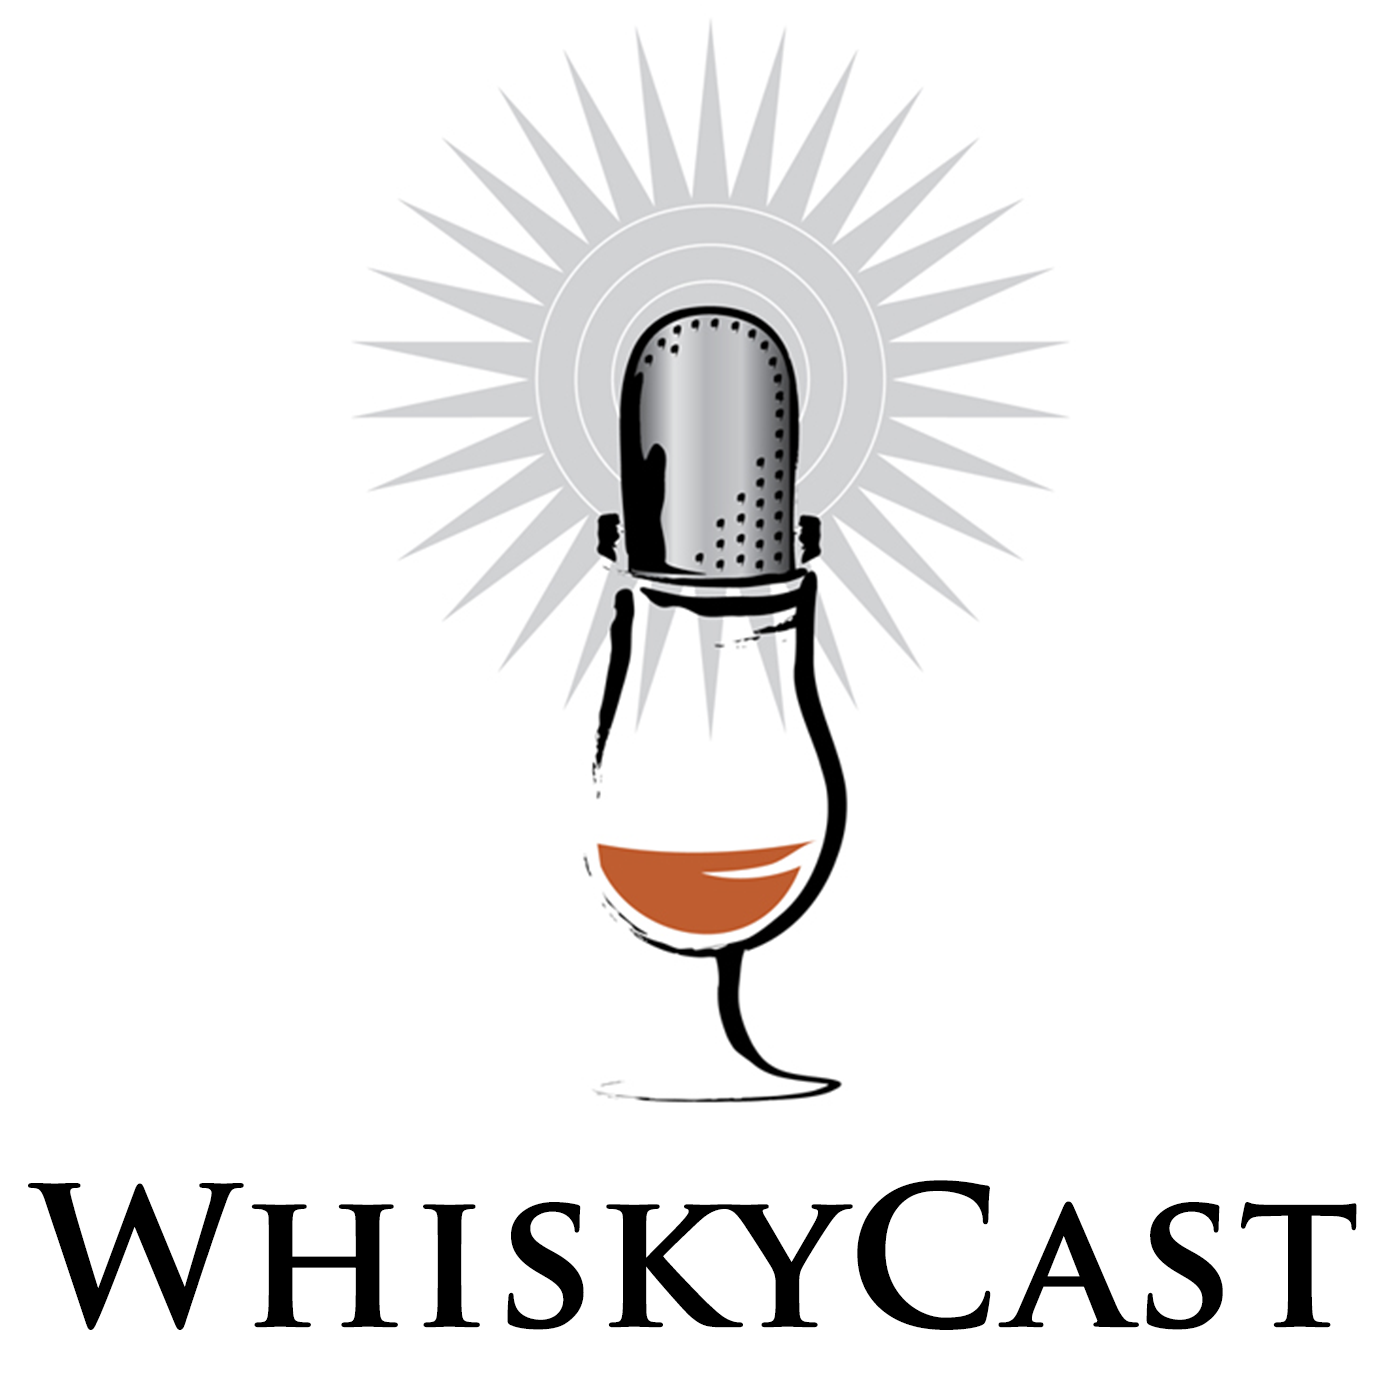 WhiskyCast Episode 419: April 6, 2013